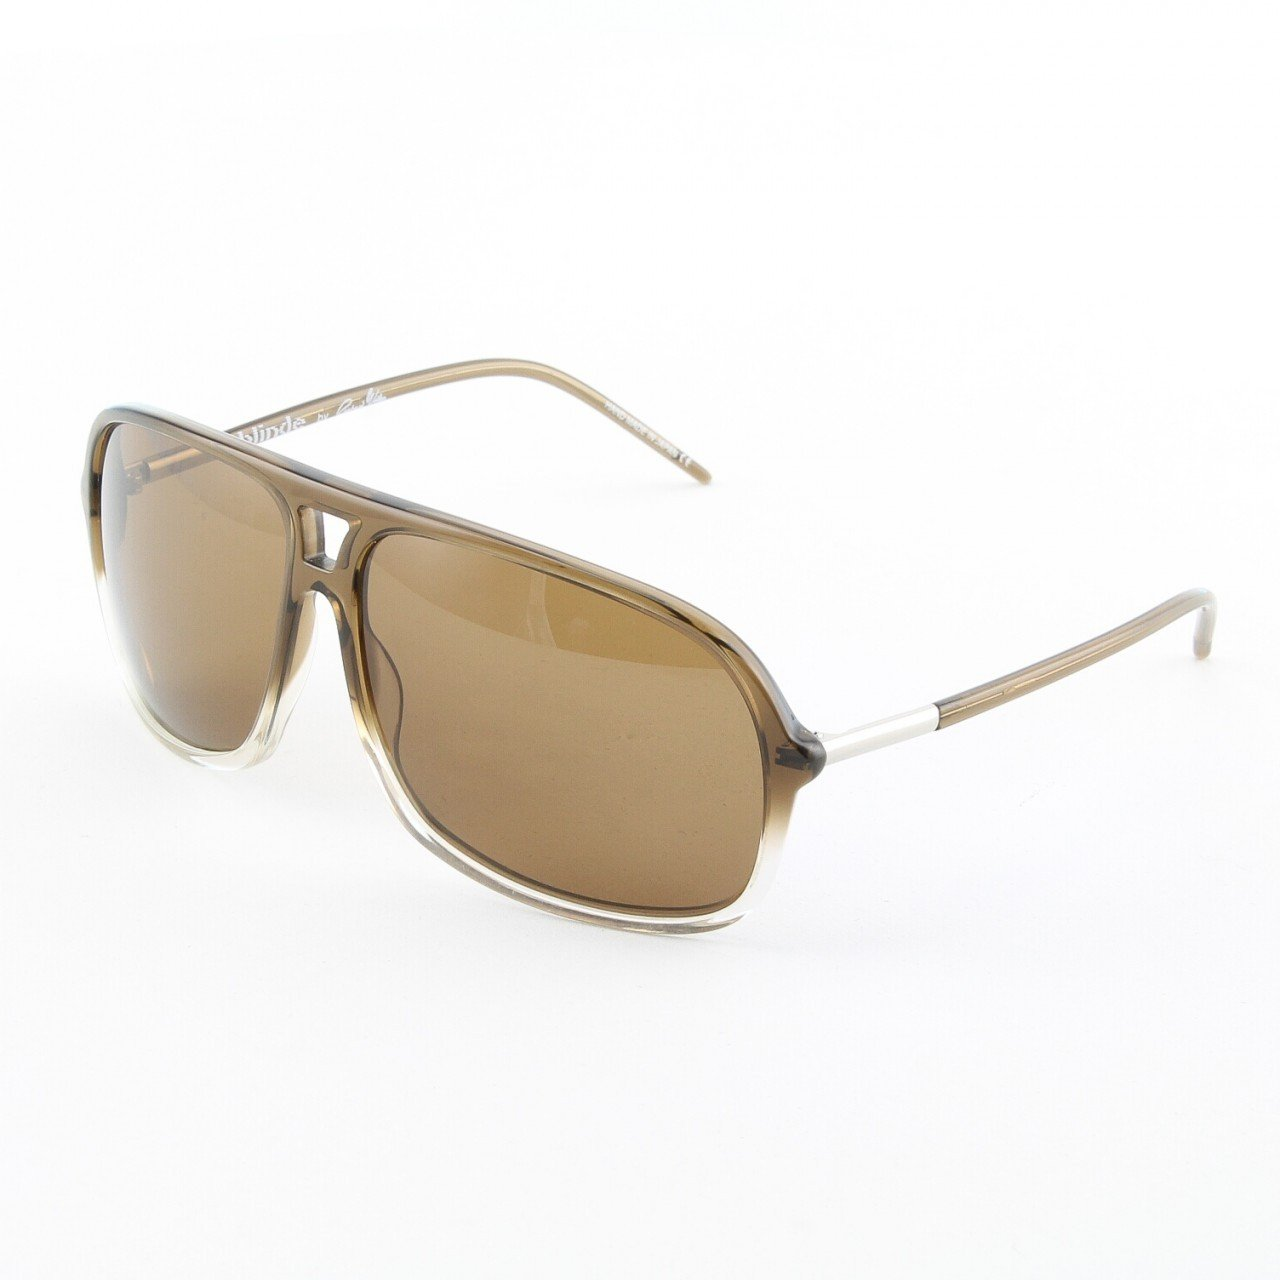 Blinde Lights Out Unisex Sunglasses Col. Brown Crystal with Brown Gradient Lenses